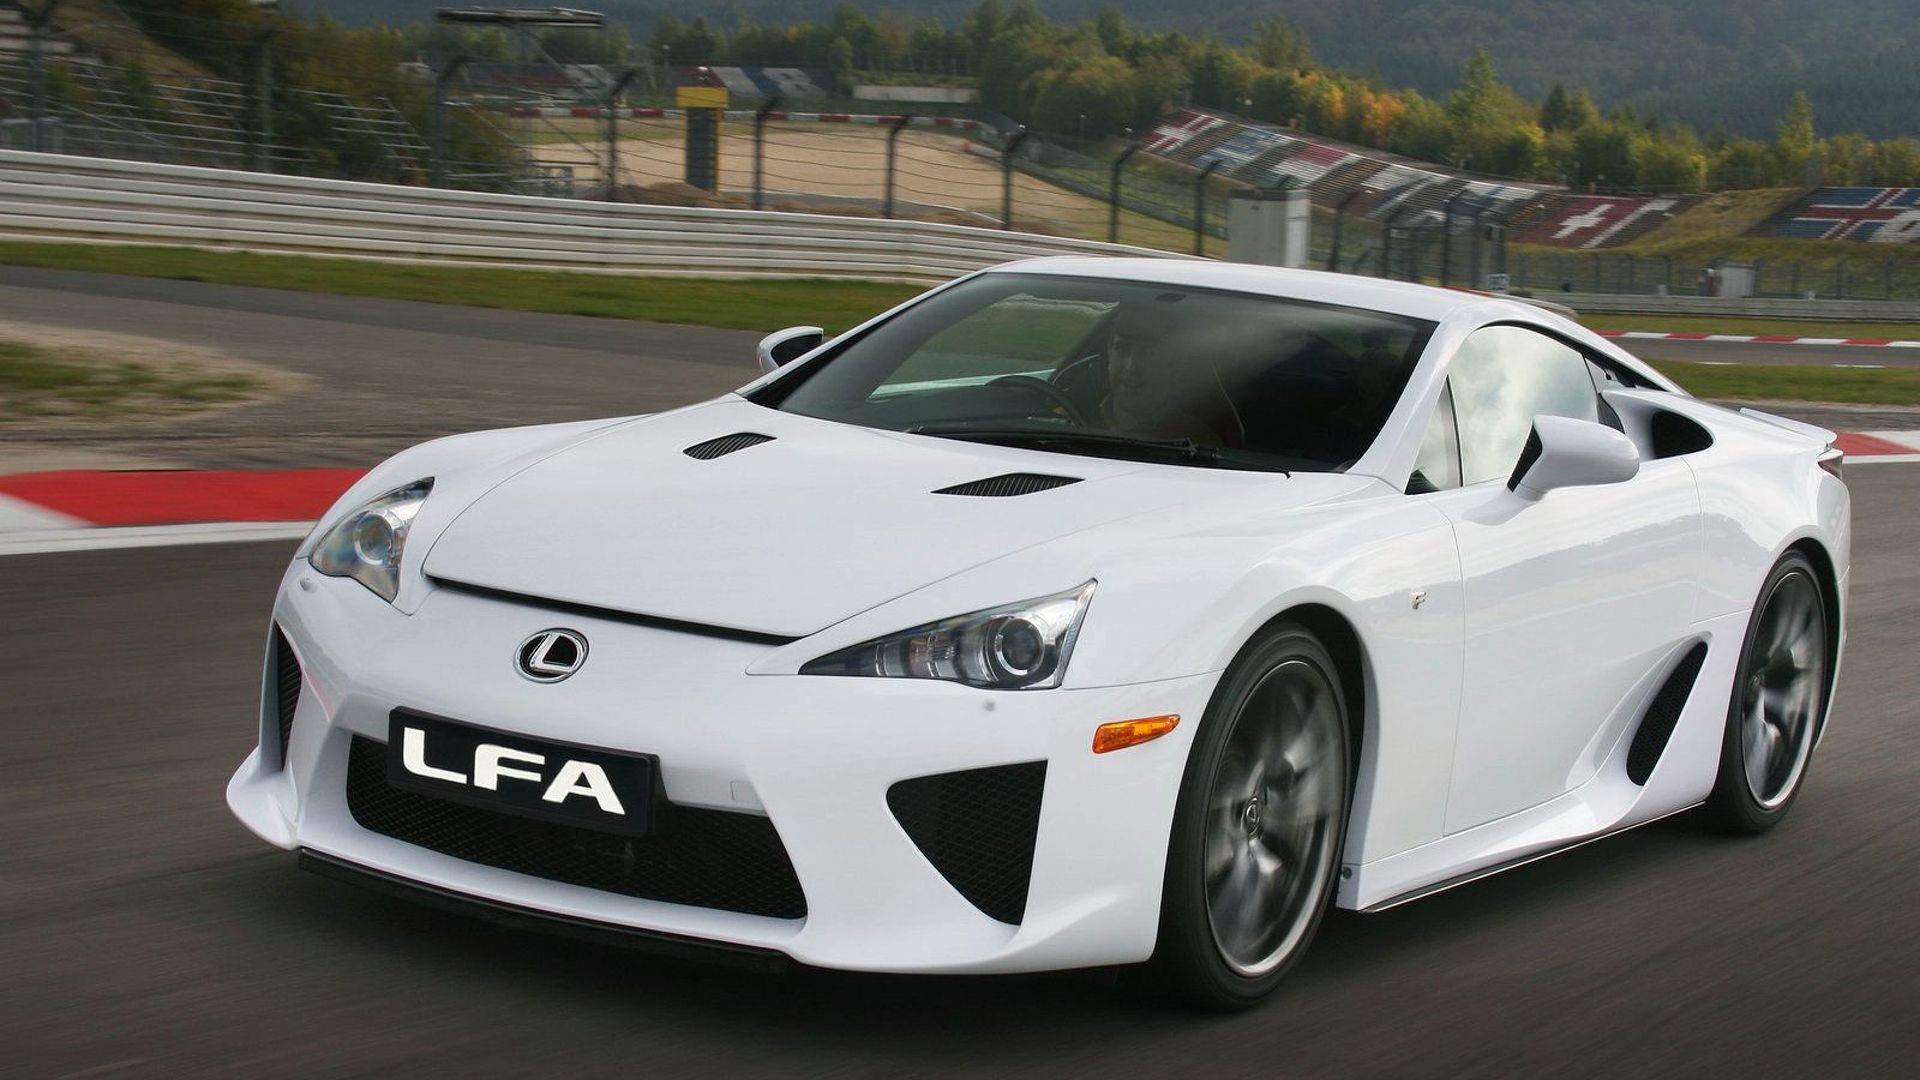 Lexus LFA successor reportedly in the works with 800 bhp